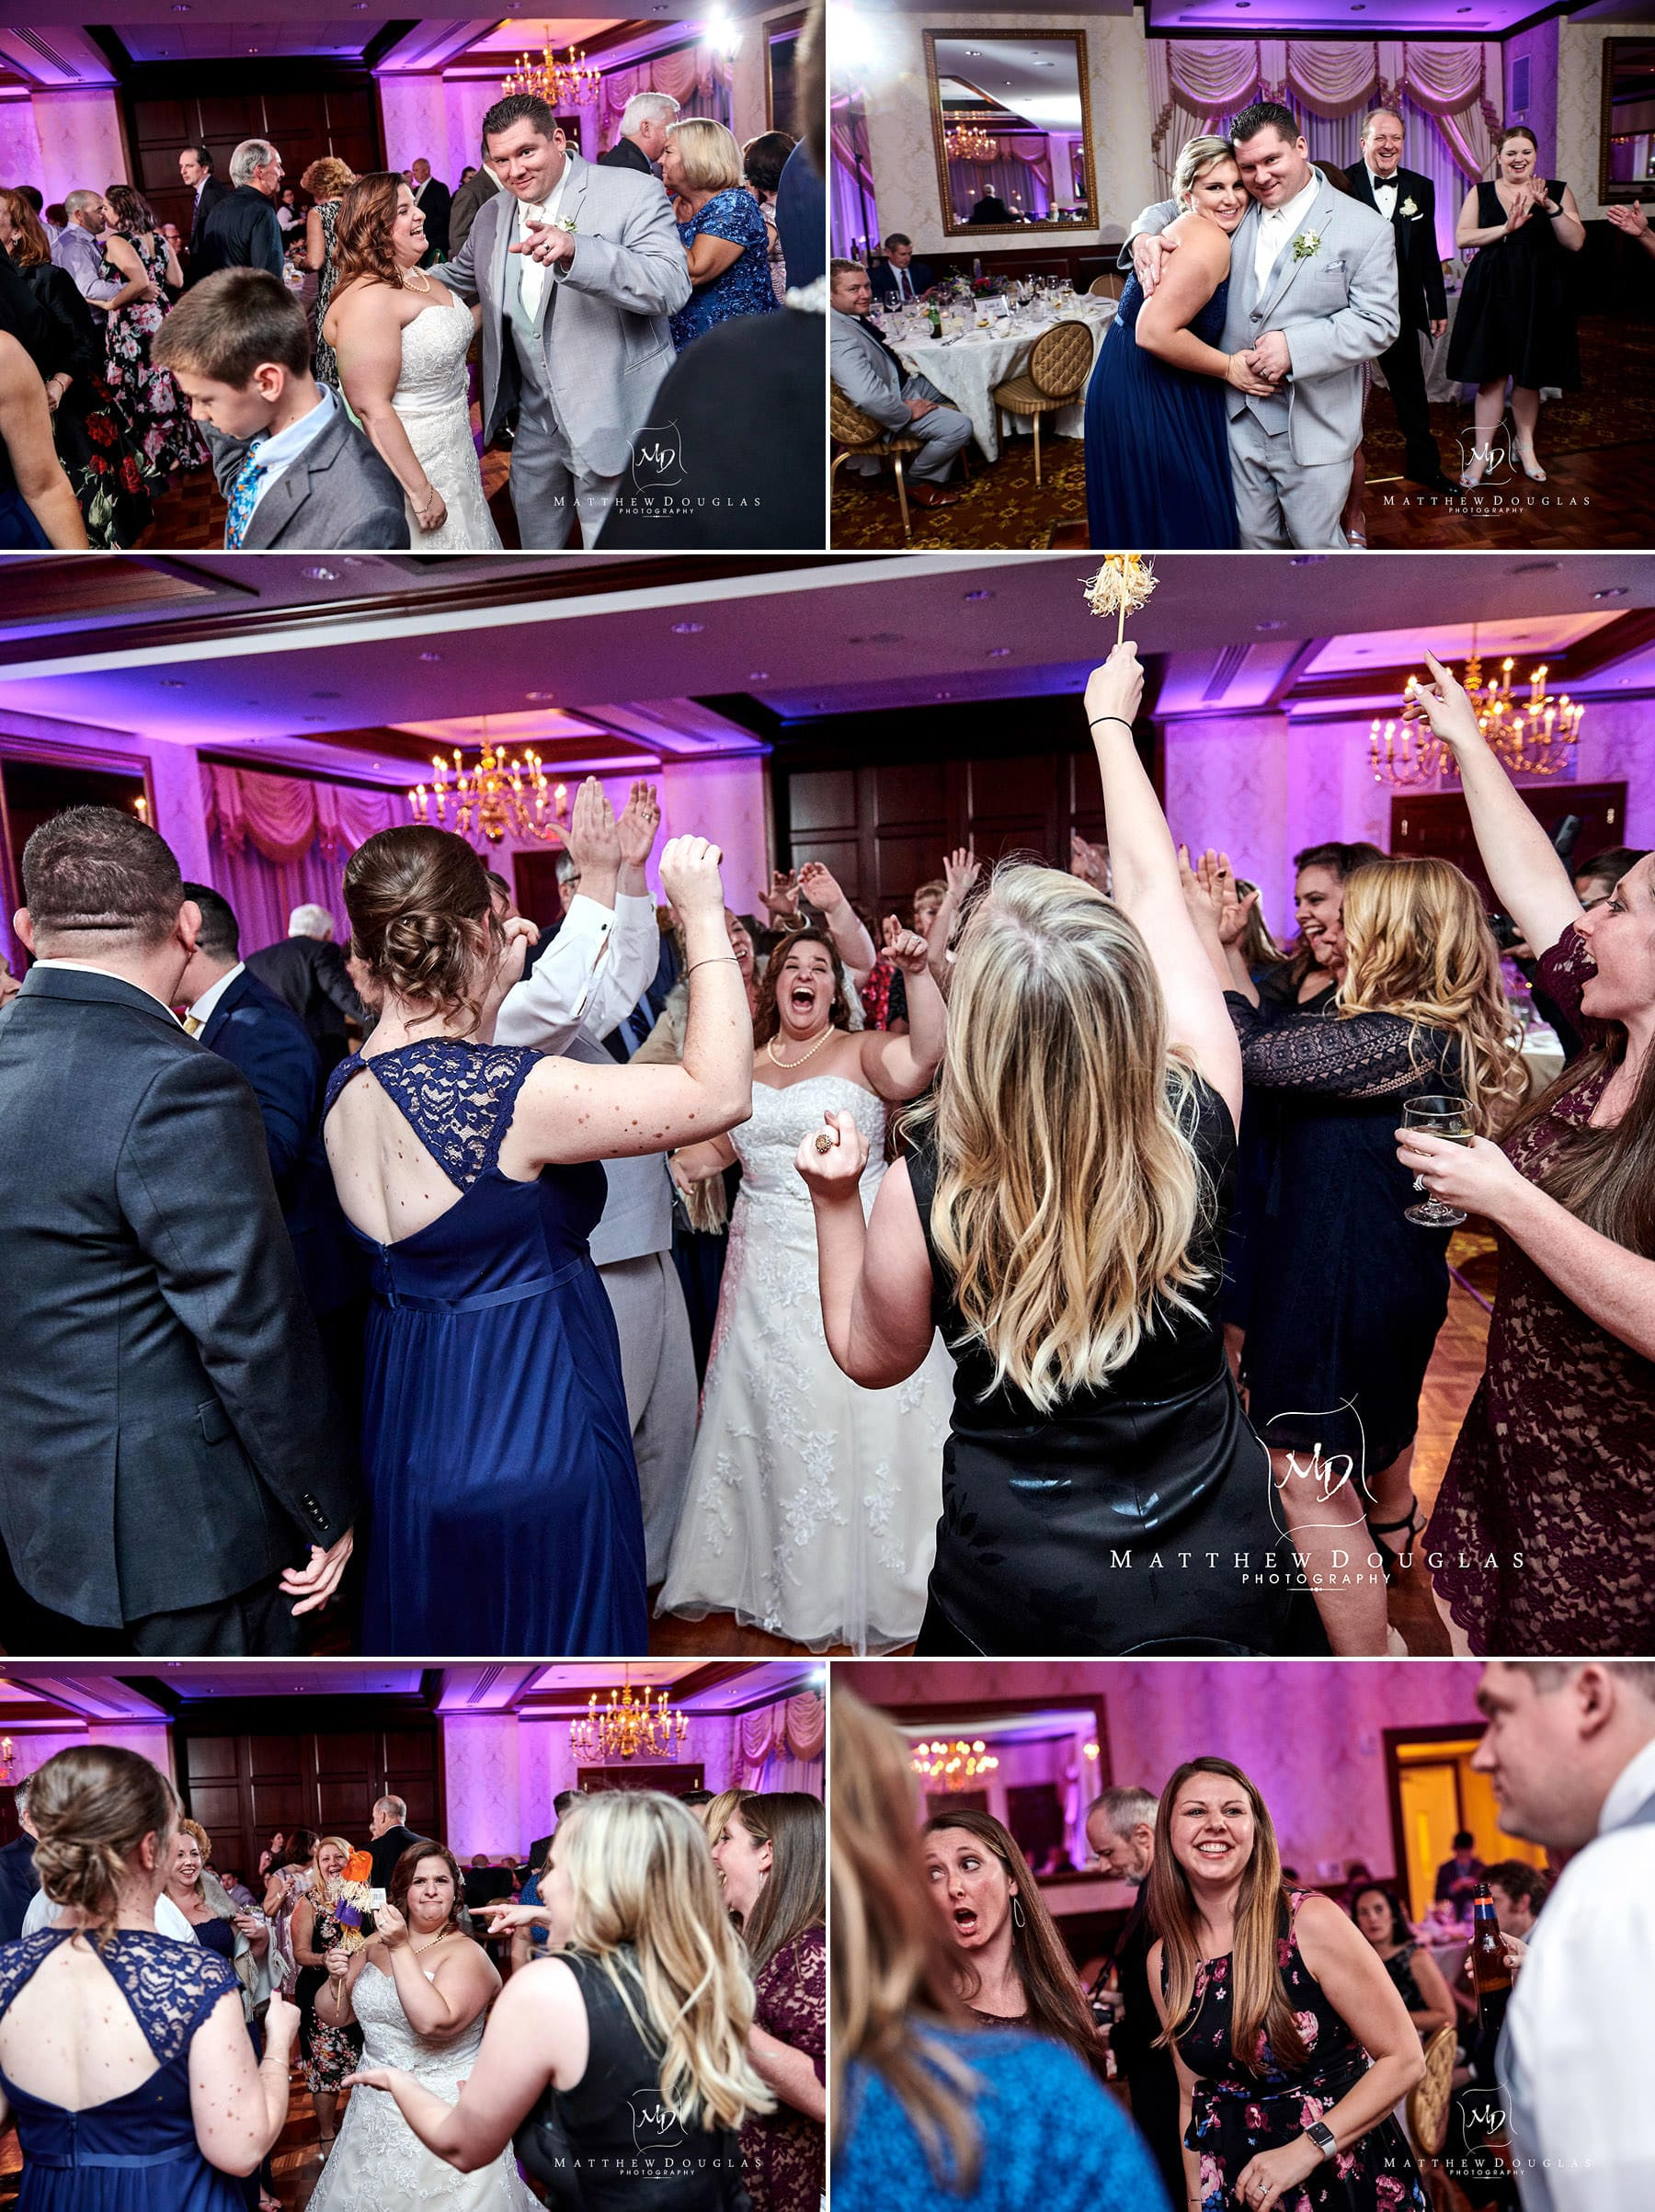 Nassau Inn wedding dancing photos